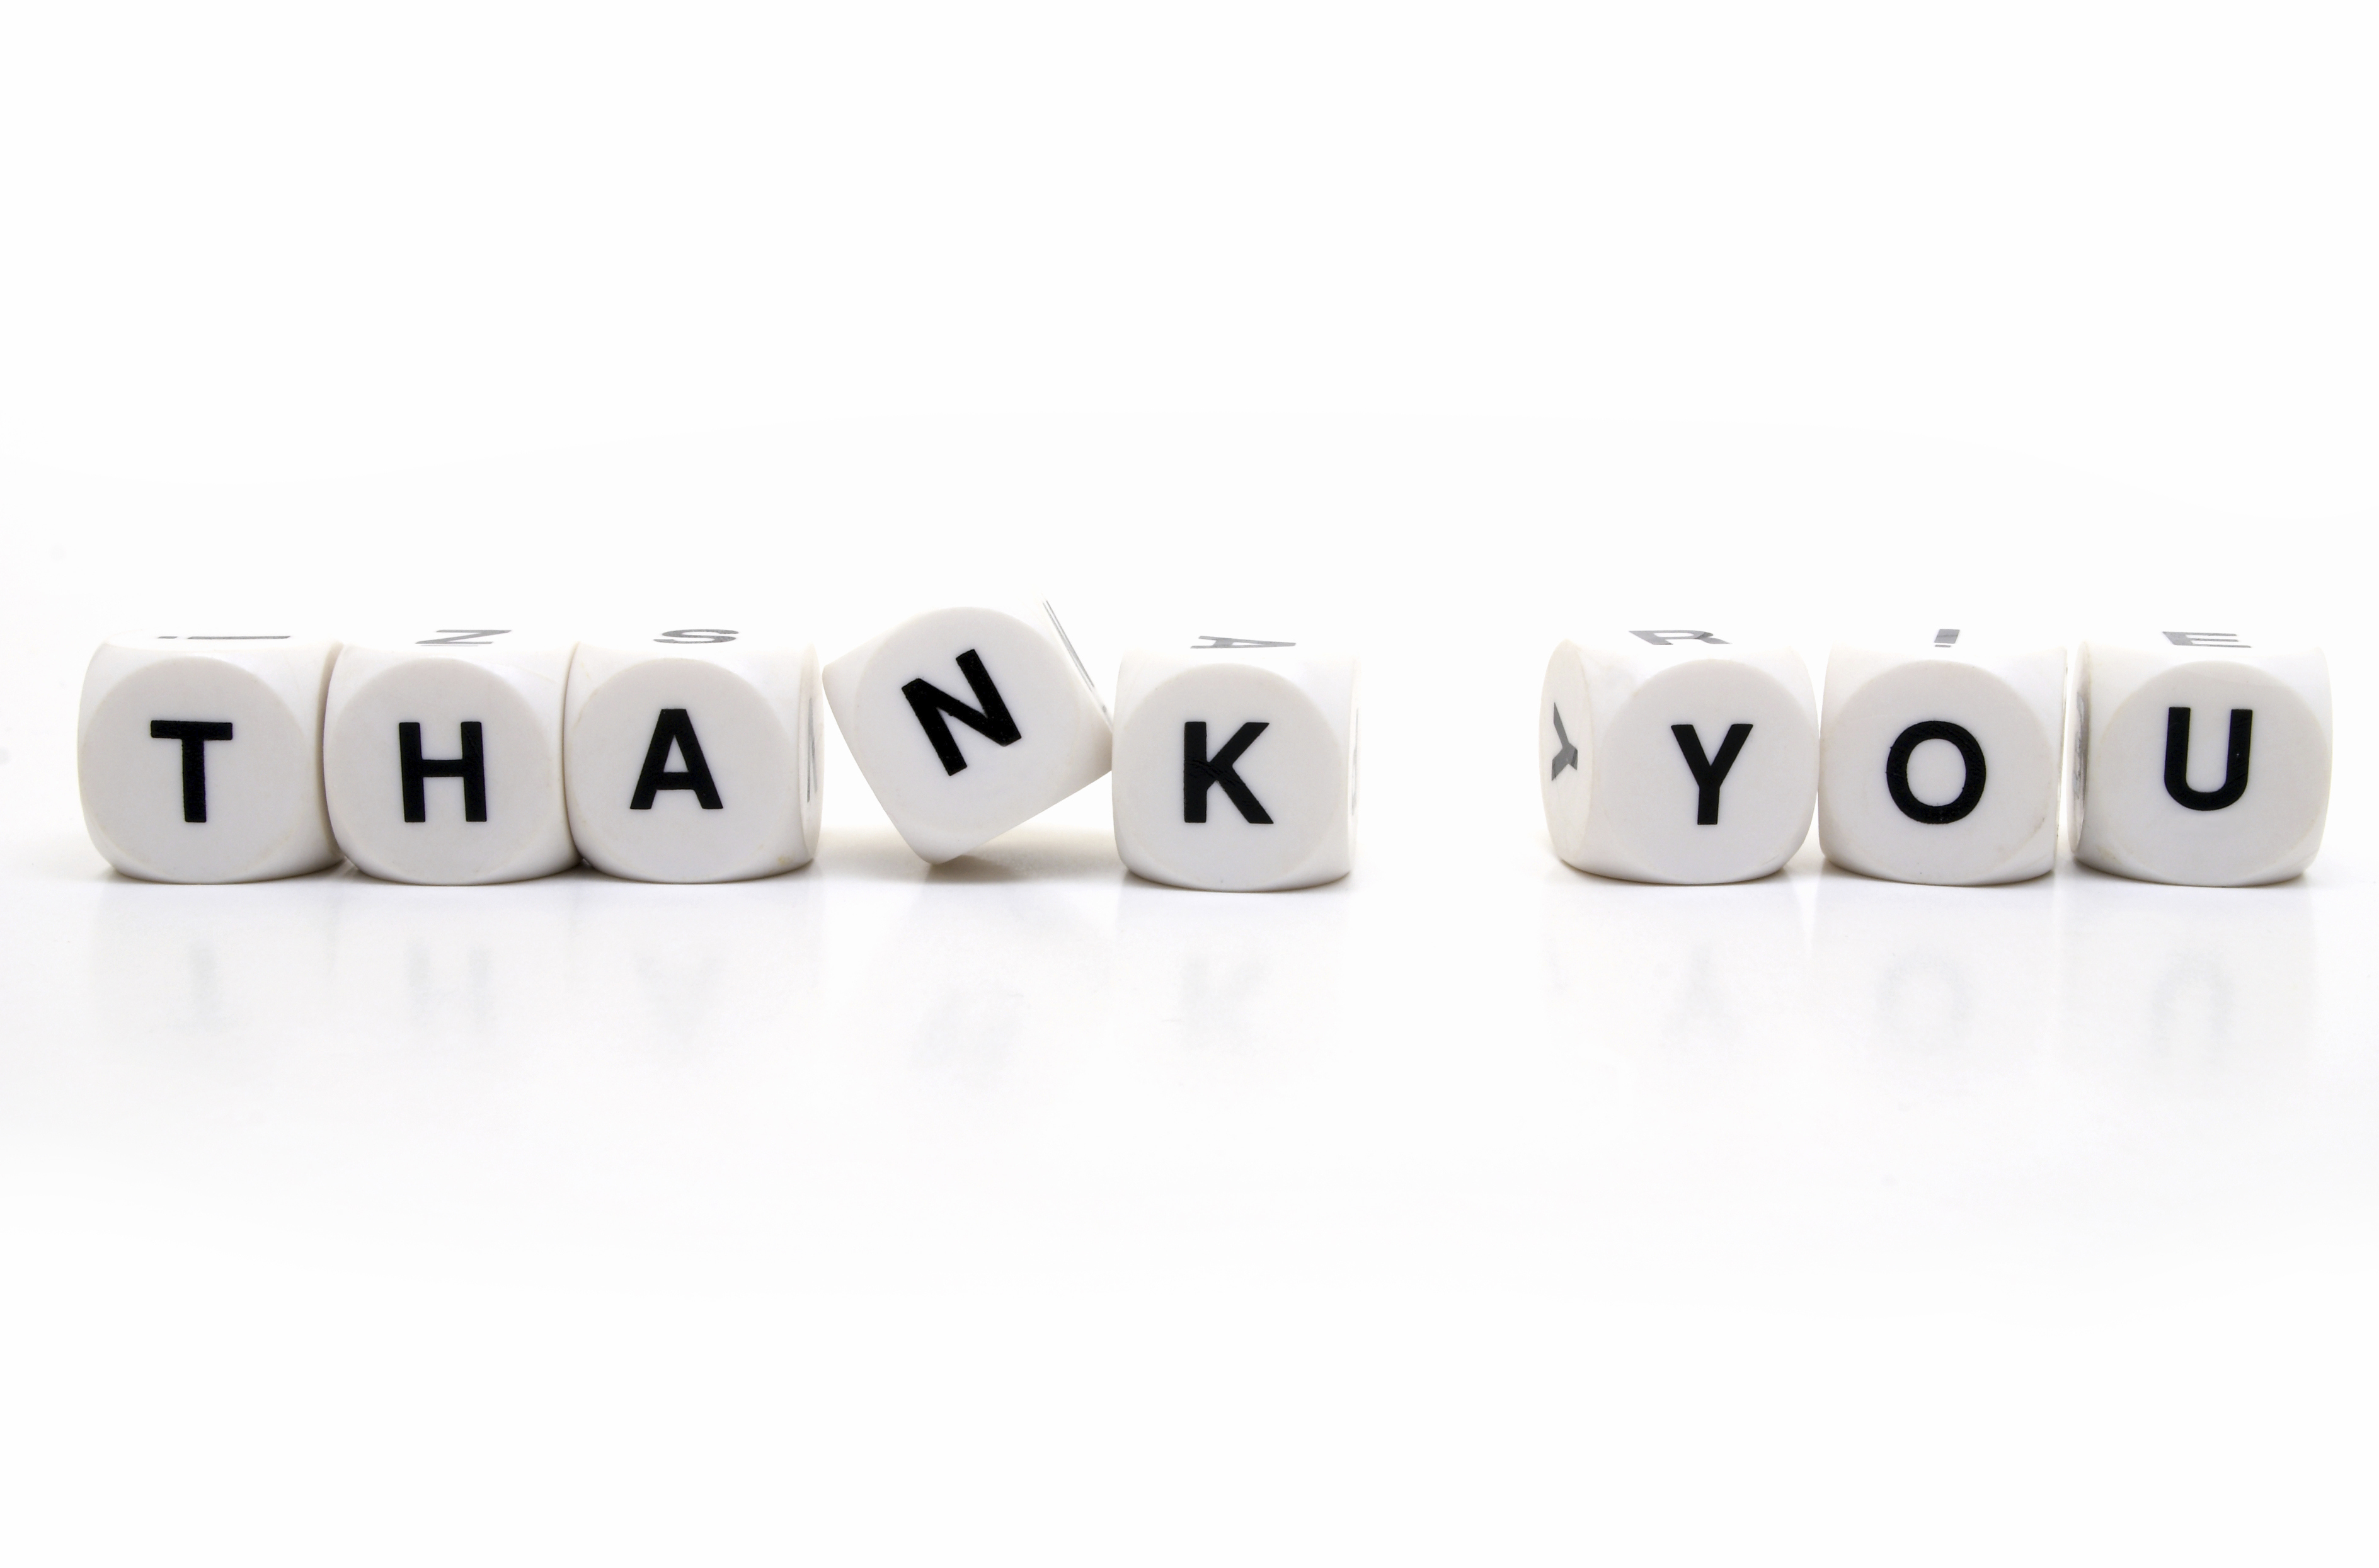 Thank You Full Resolution Wallpapers Collection - Thank You For Your Time Clip Art - HD Wallpaper